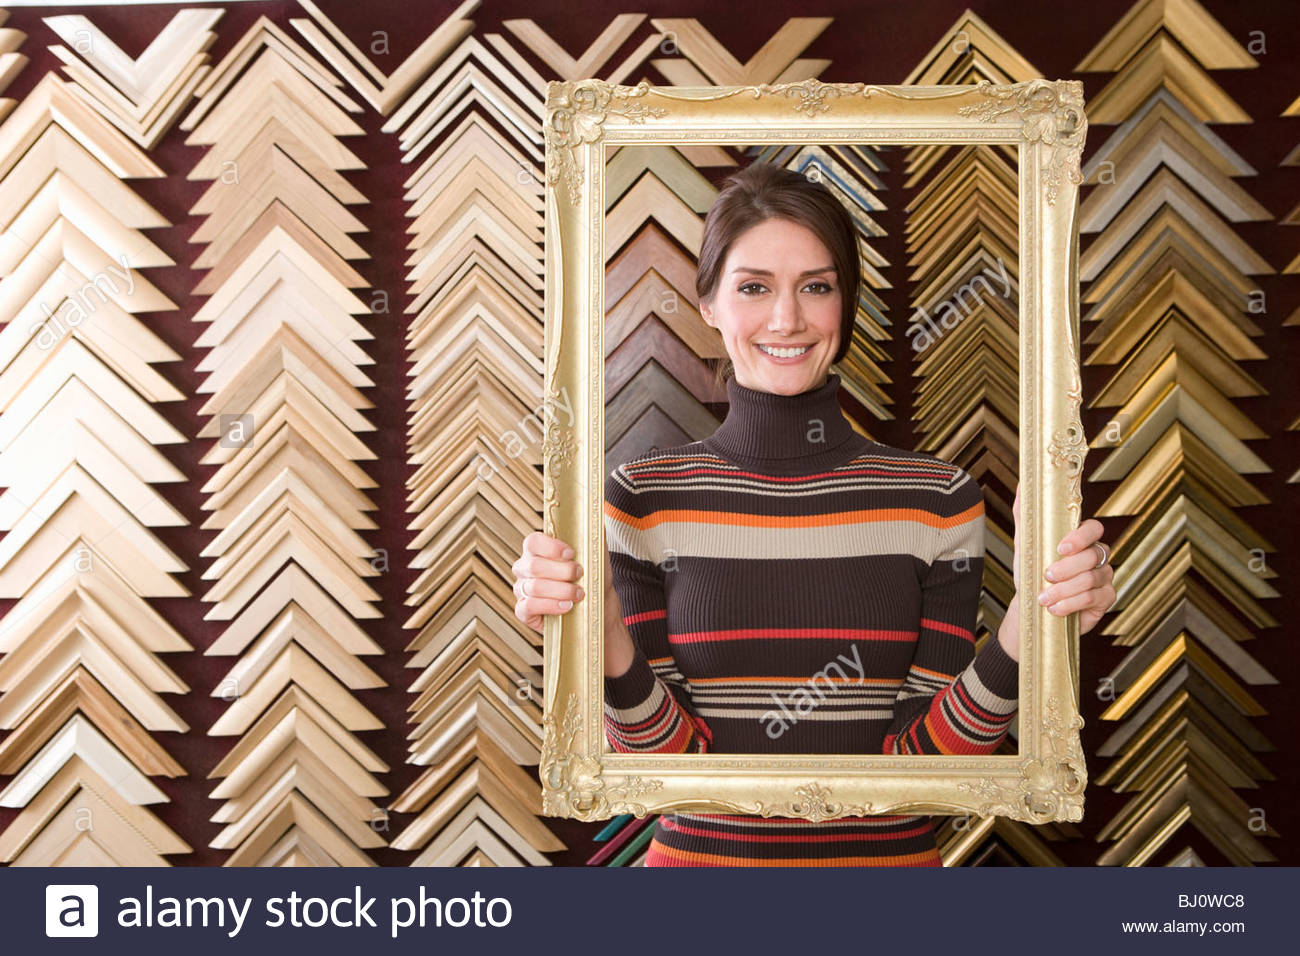 Clerk lifting gold frame in frame shop - Stock Image